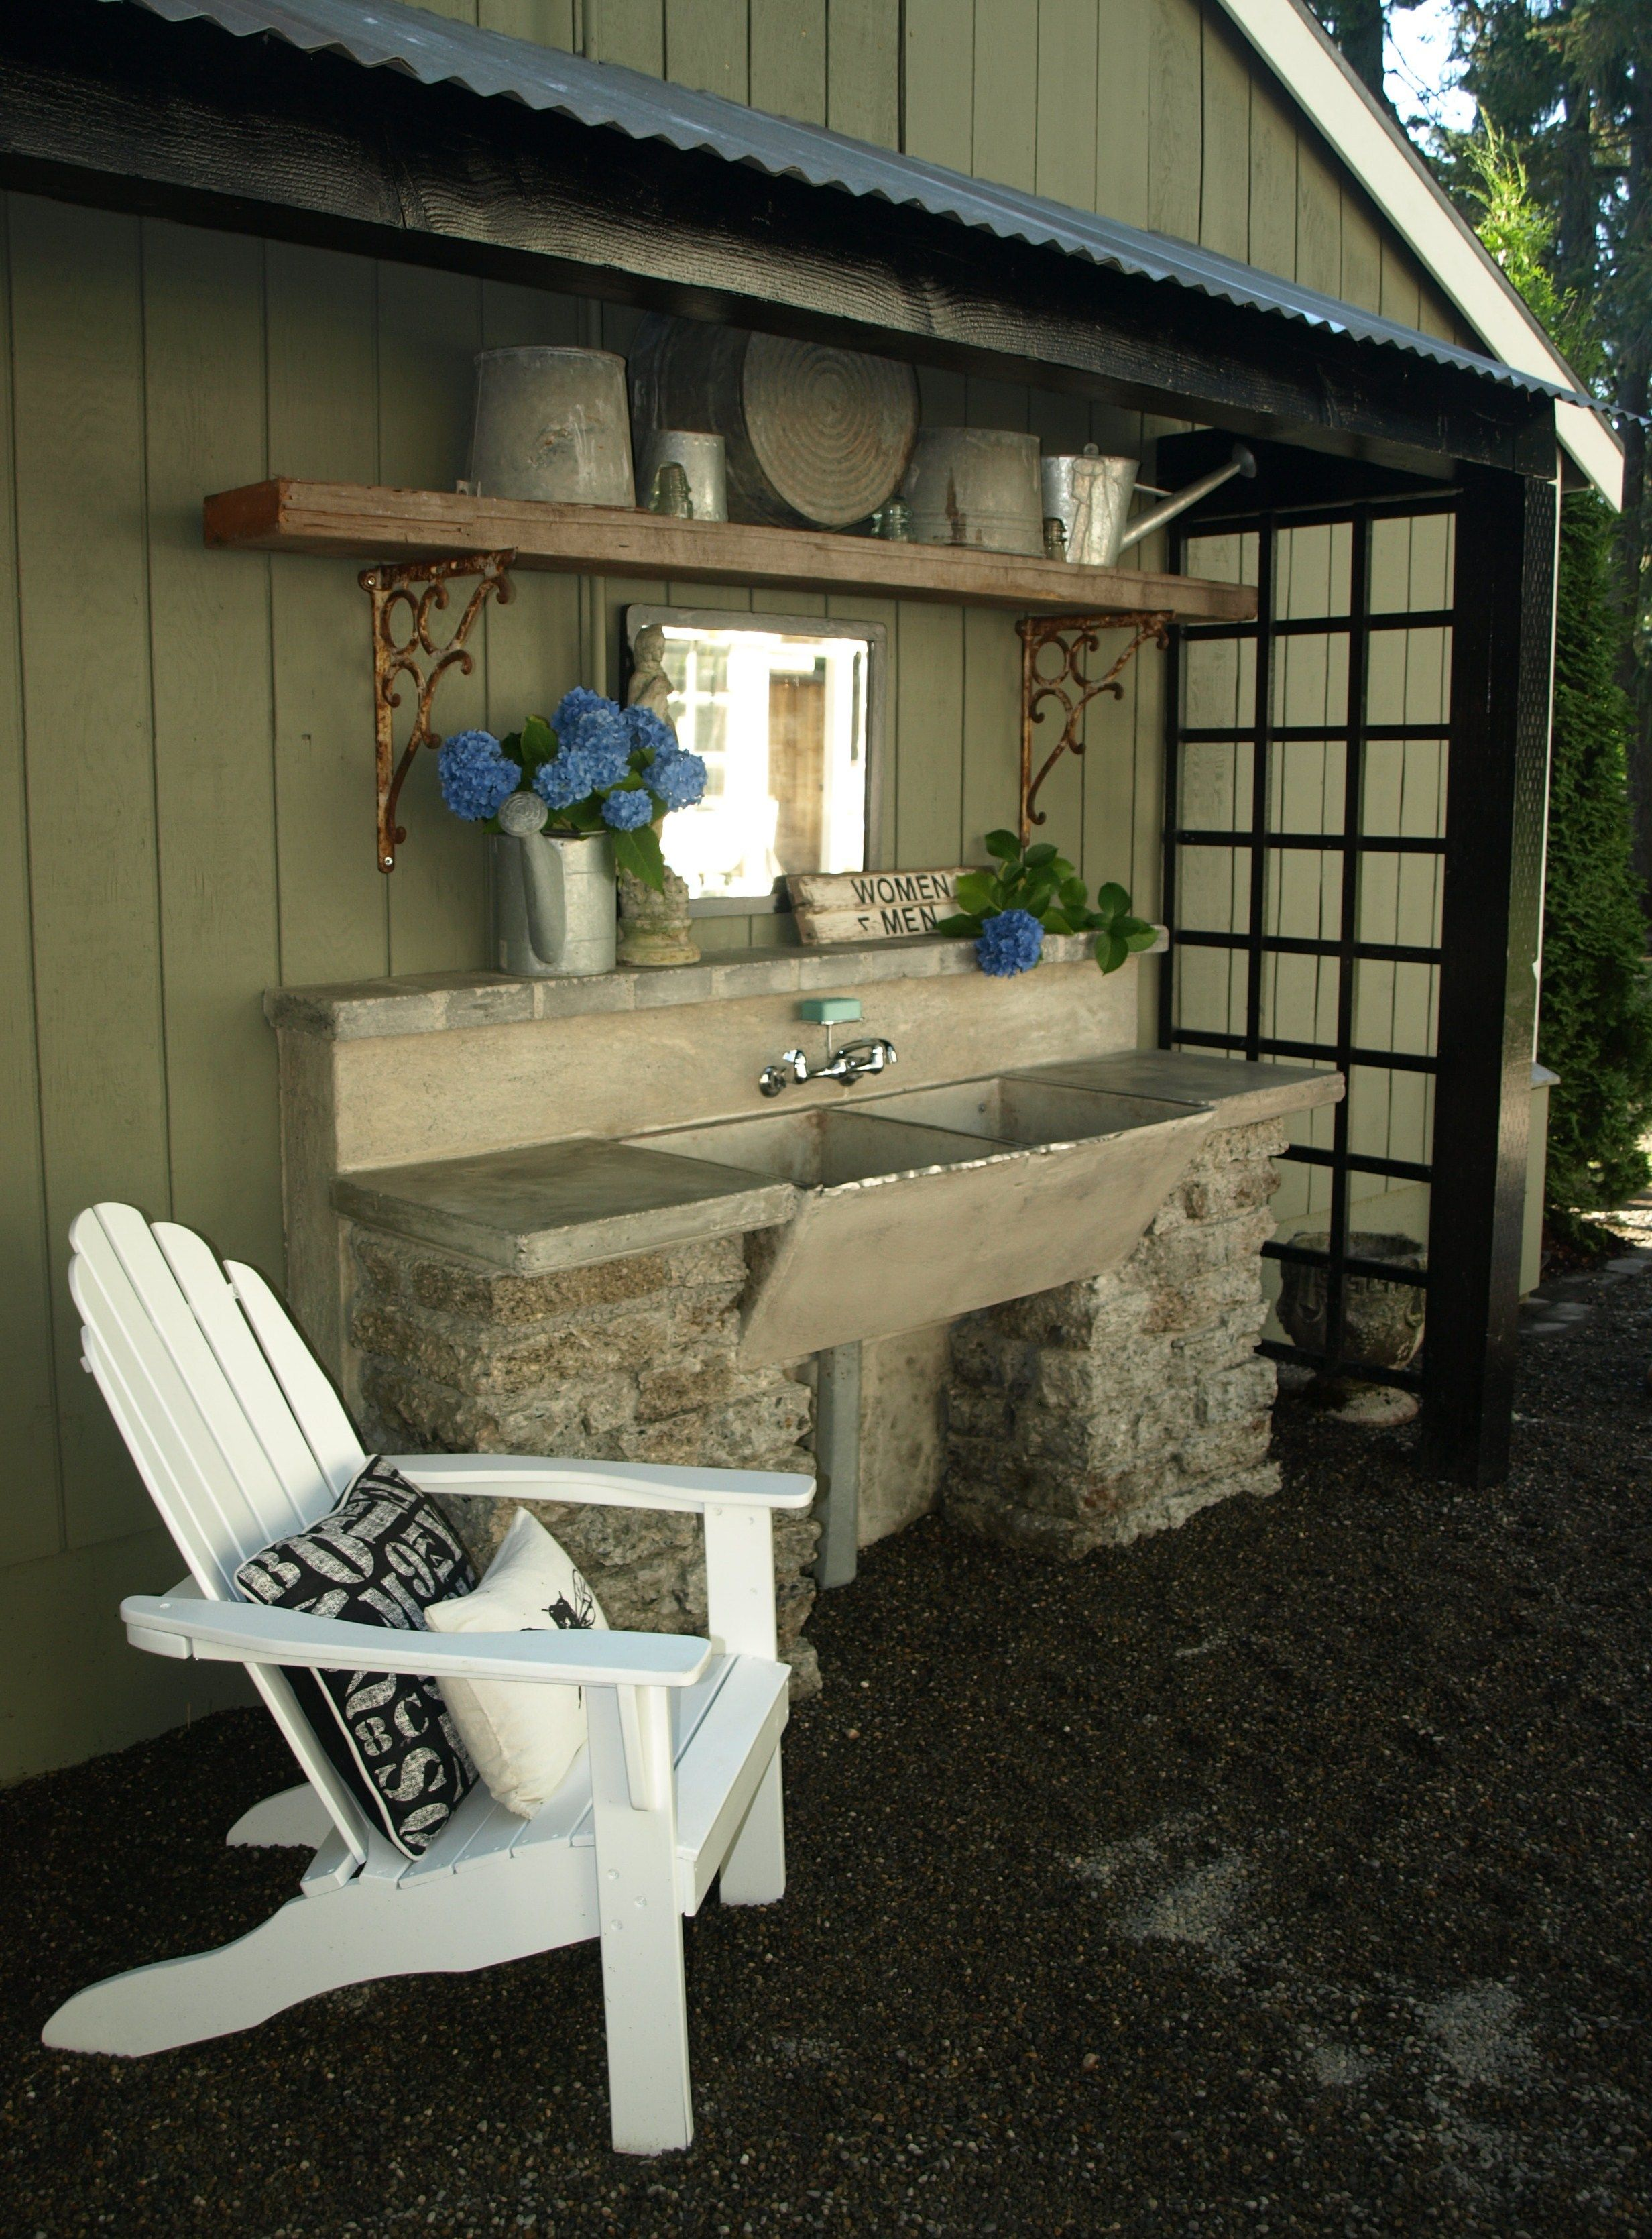 kitchens own for faucet outdoor awesome your kitchen with tips beautiful trends pictures and sink sinks ideas making inspirations